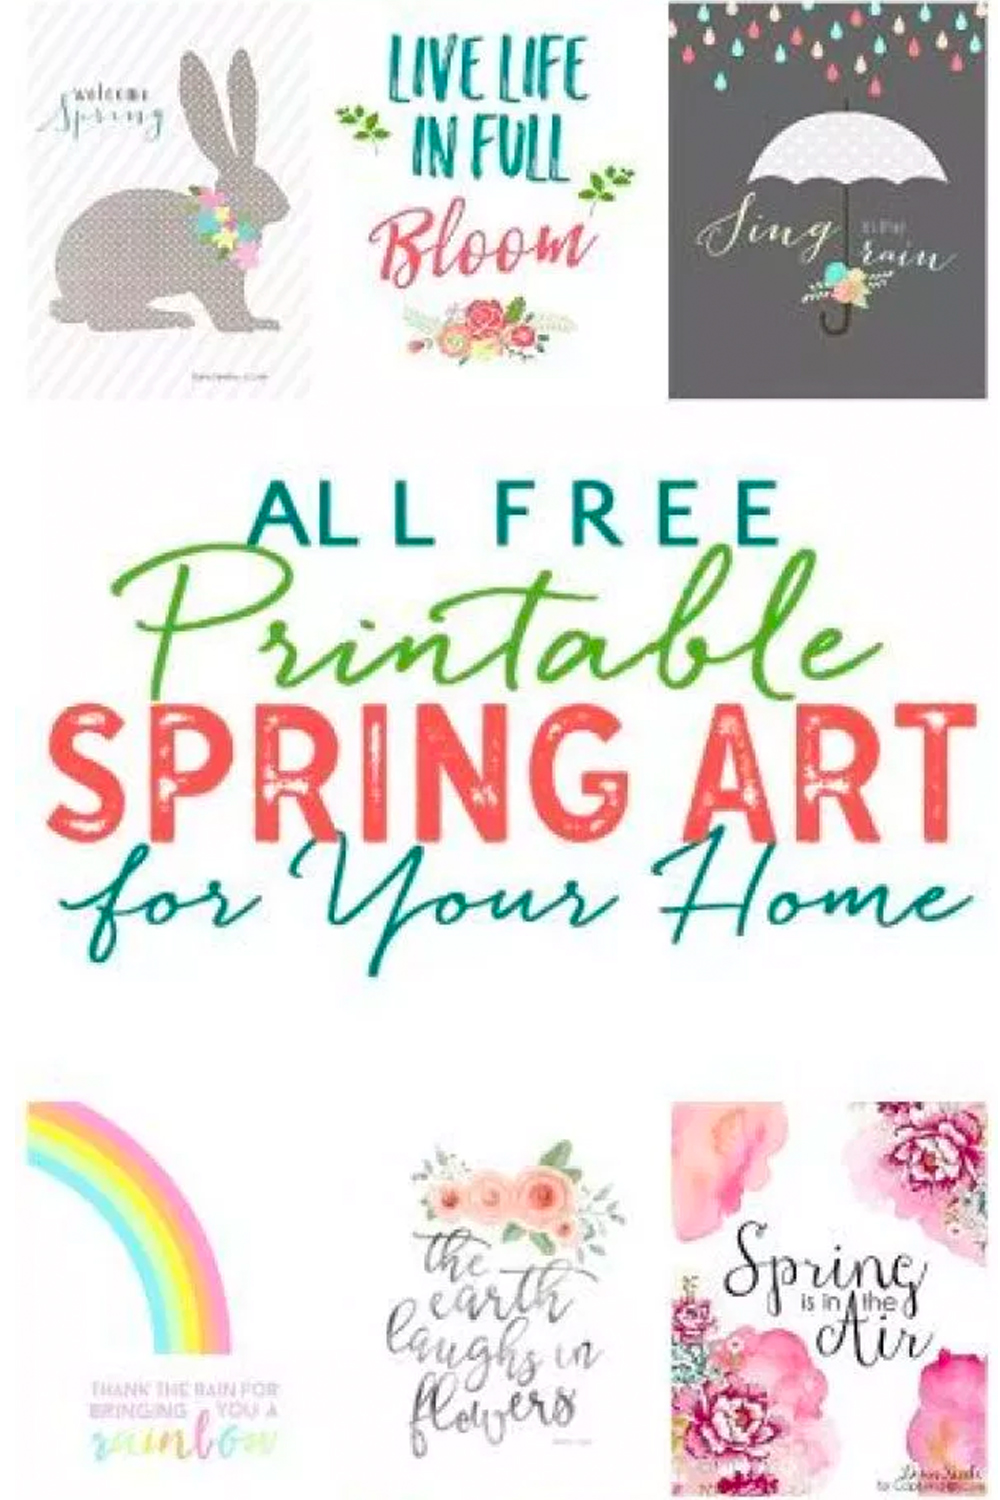 image regarding Free Printables for Home referred to as Charming No cost Spring Printables: Spring Artwork For Your Residence